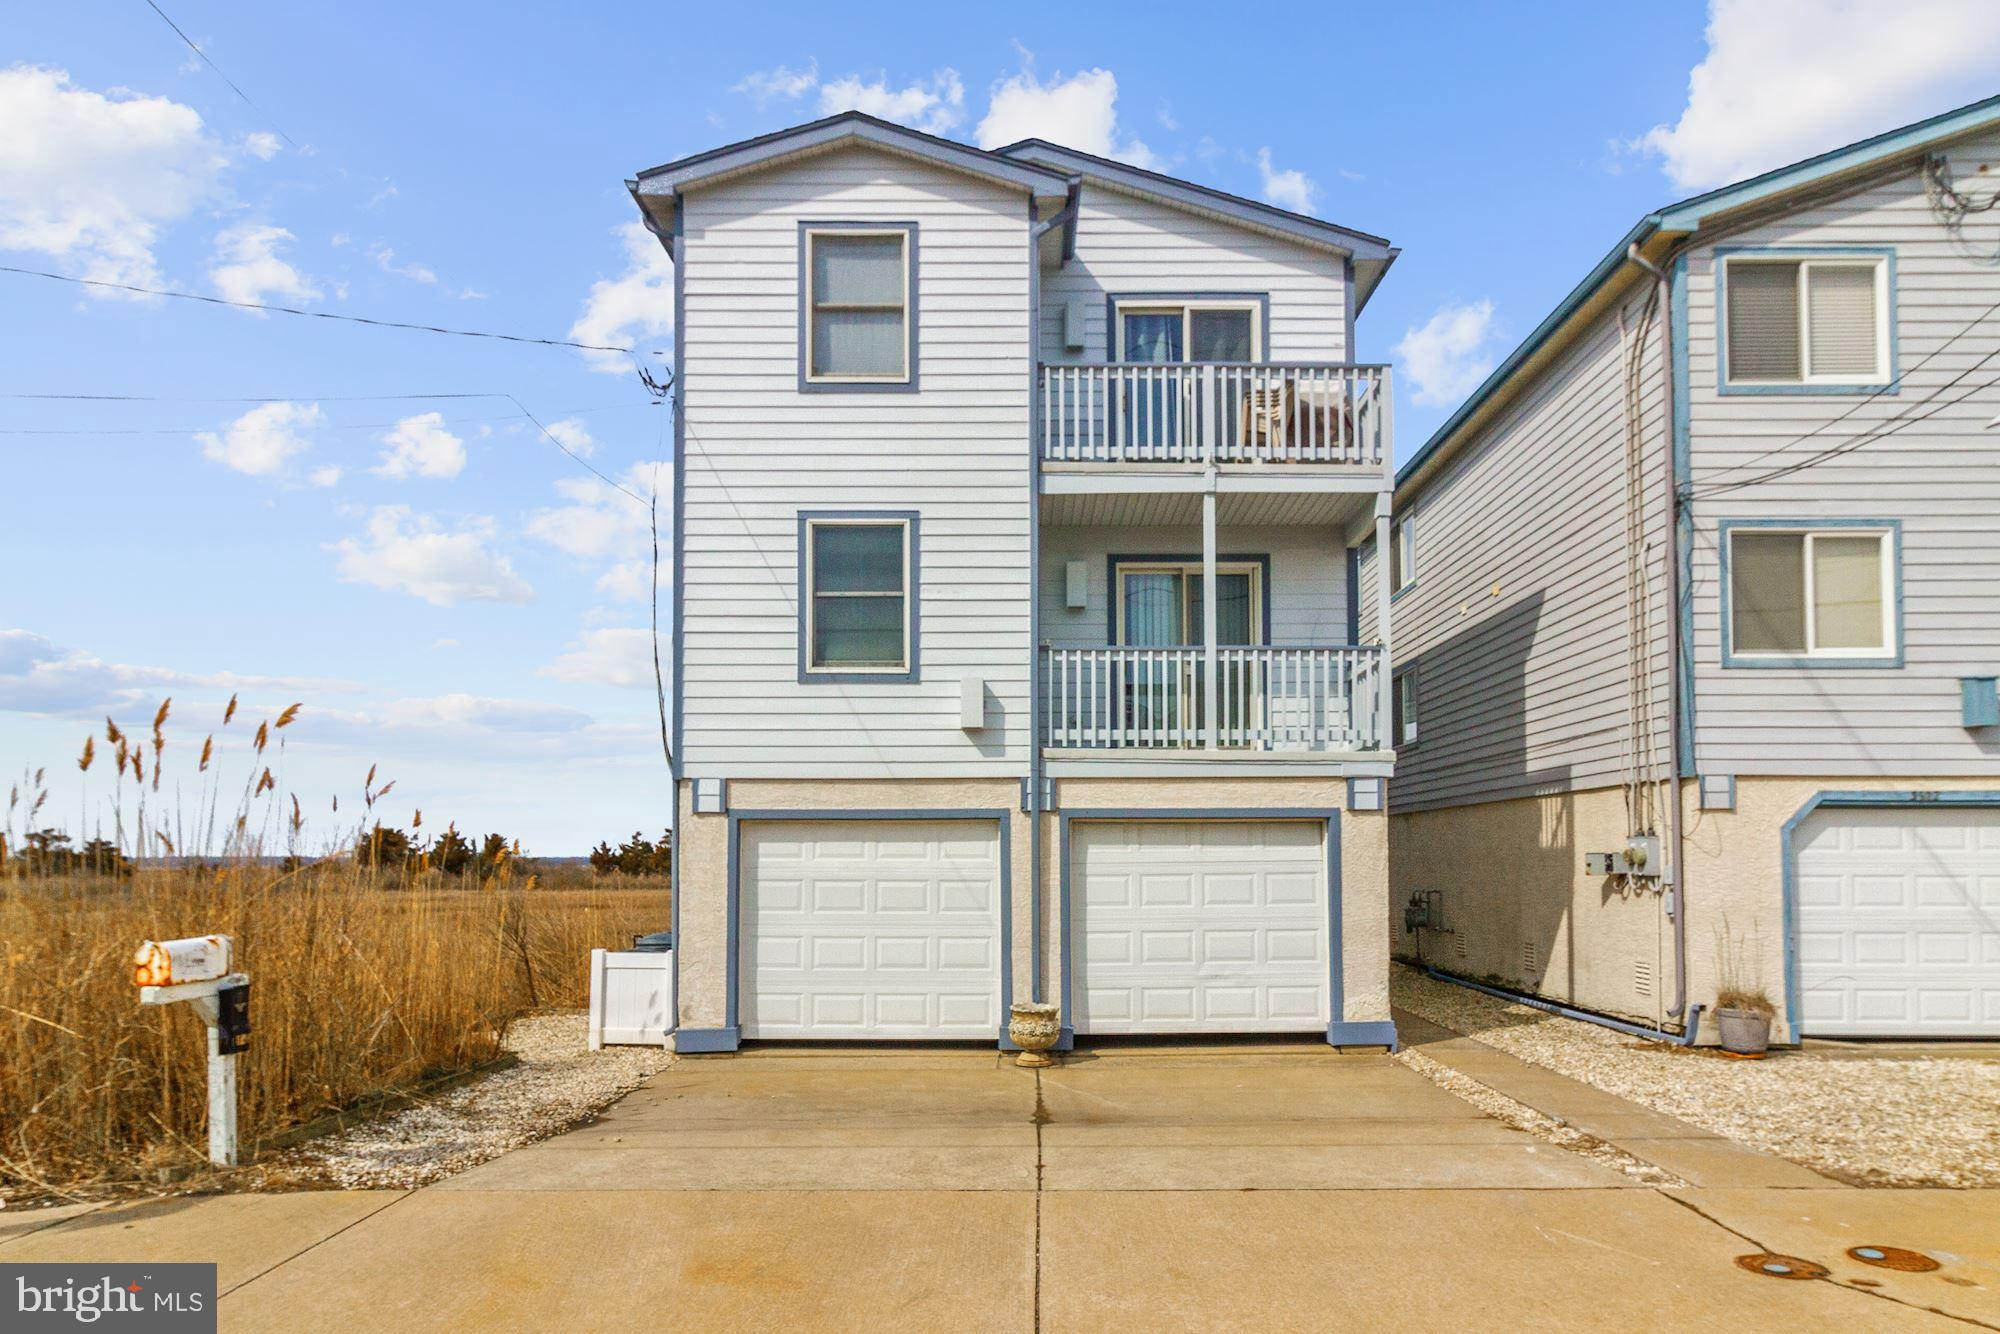 3904 W WEST AVENUE, OCEAN CITY, NJ 08226